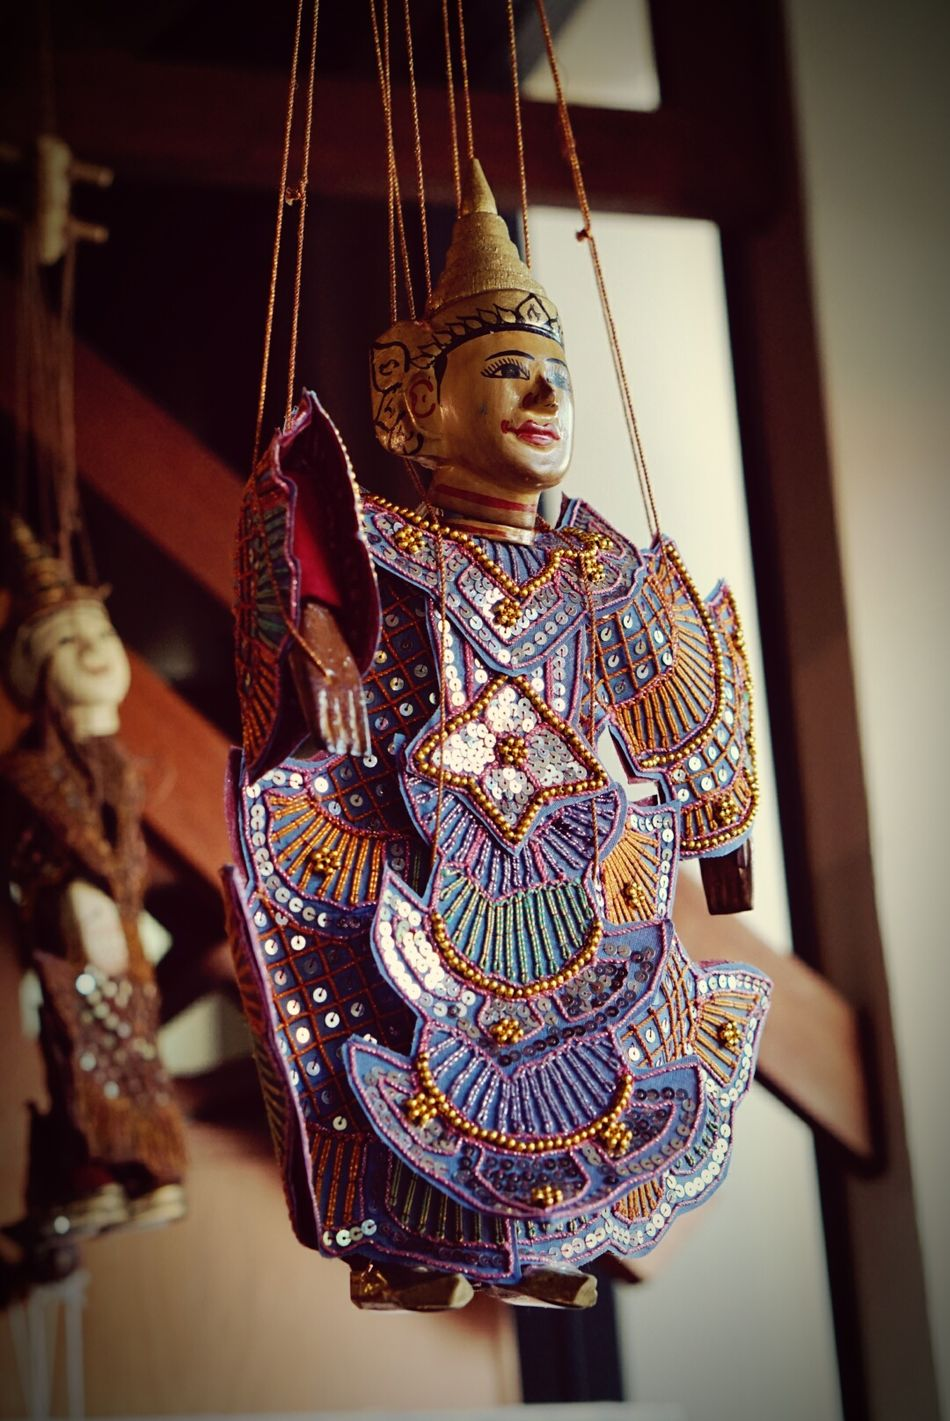 Puppet Muppet Traditional Culture Traditional Show Craft Thai Craft Thai Culture Thai Art Chiangmai Thai Thailand